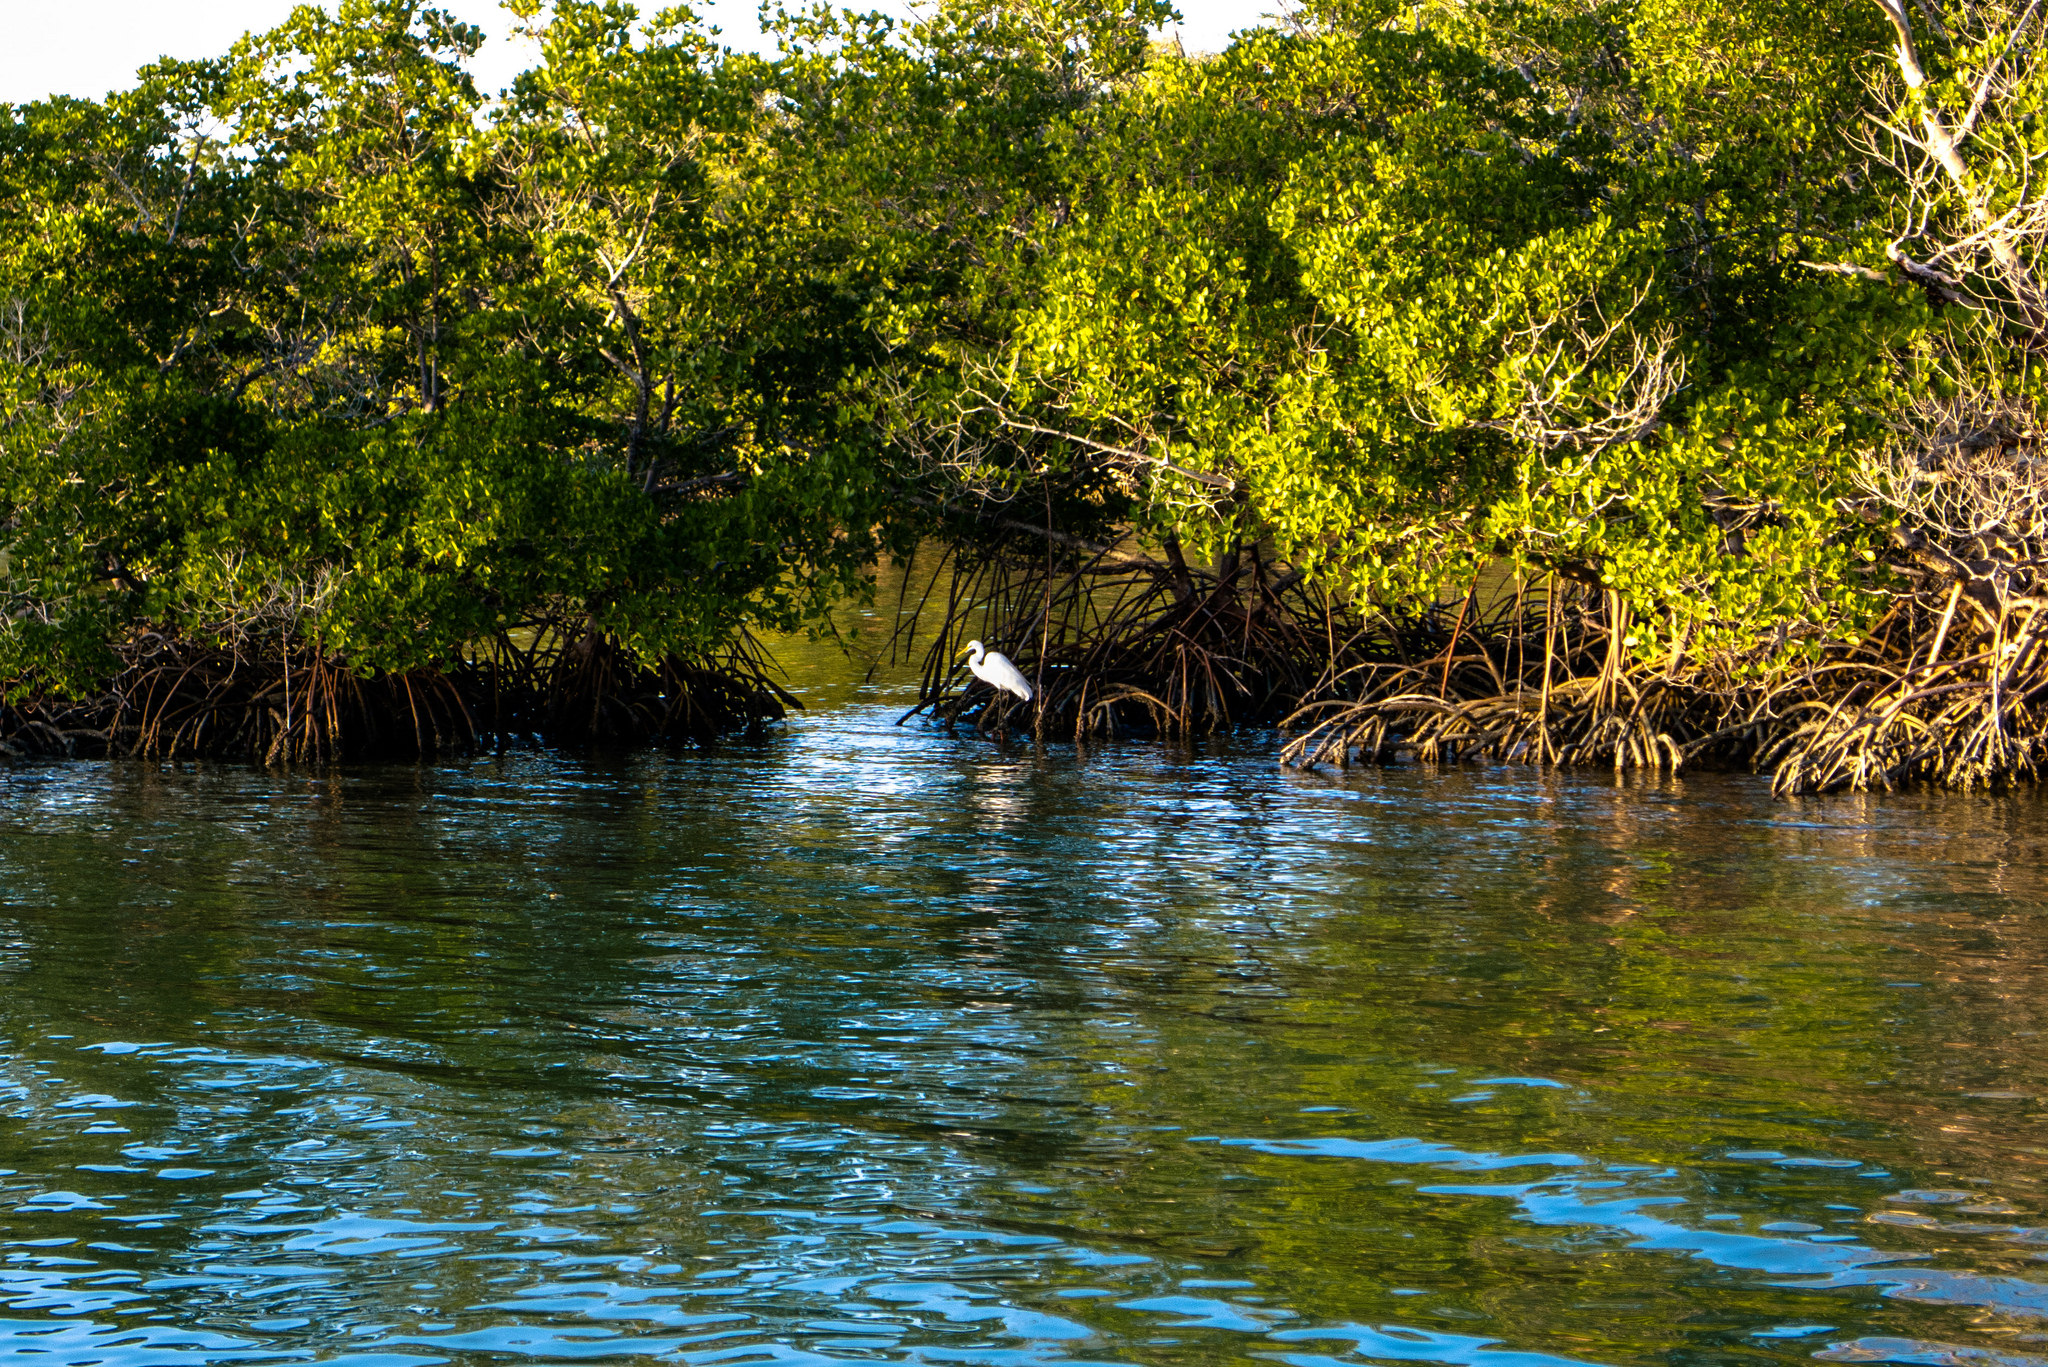 Climate change: Mangrove forests expand range northward as regions warm